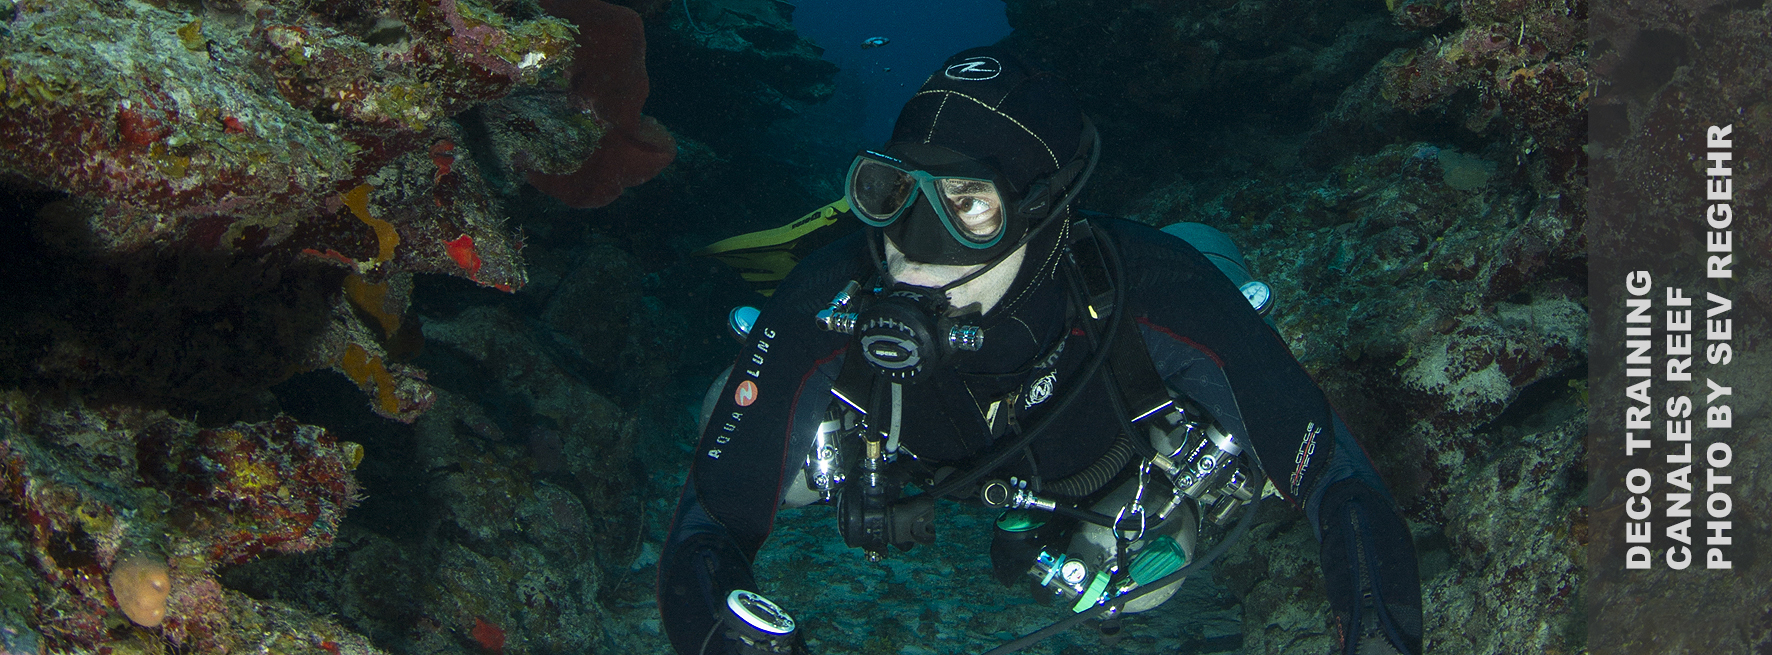 Umder The Jungle, Technical Side Mount Course, Technical Side Mount Dive, Side Mount Mexico, Vincent Rouquette-Cathala